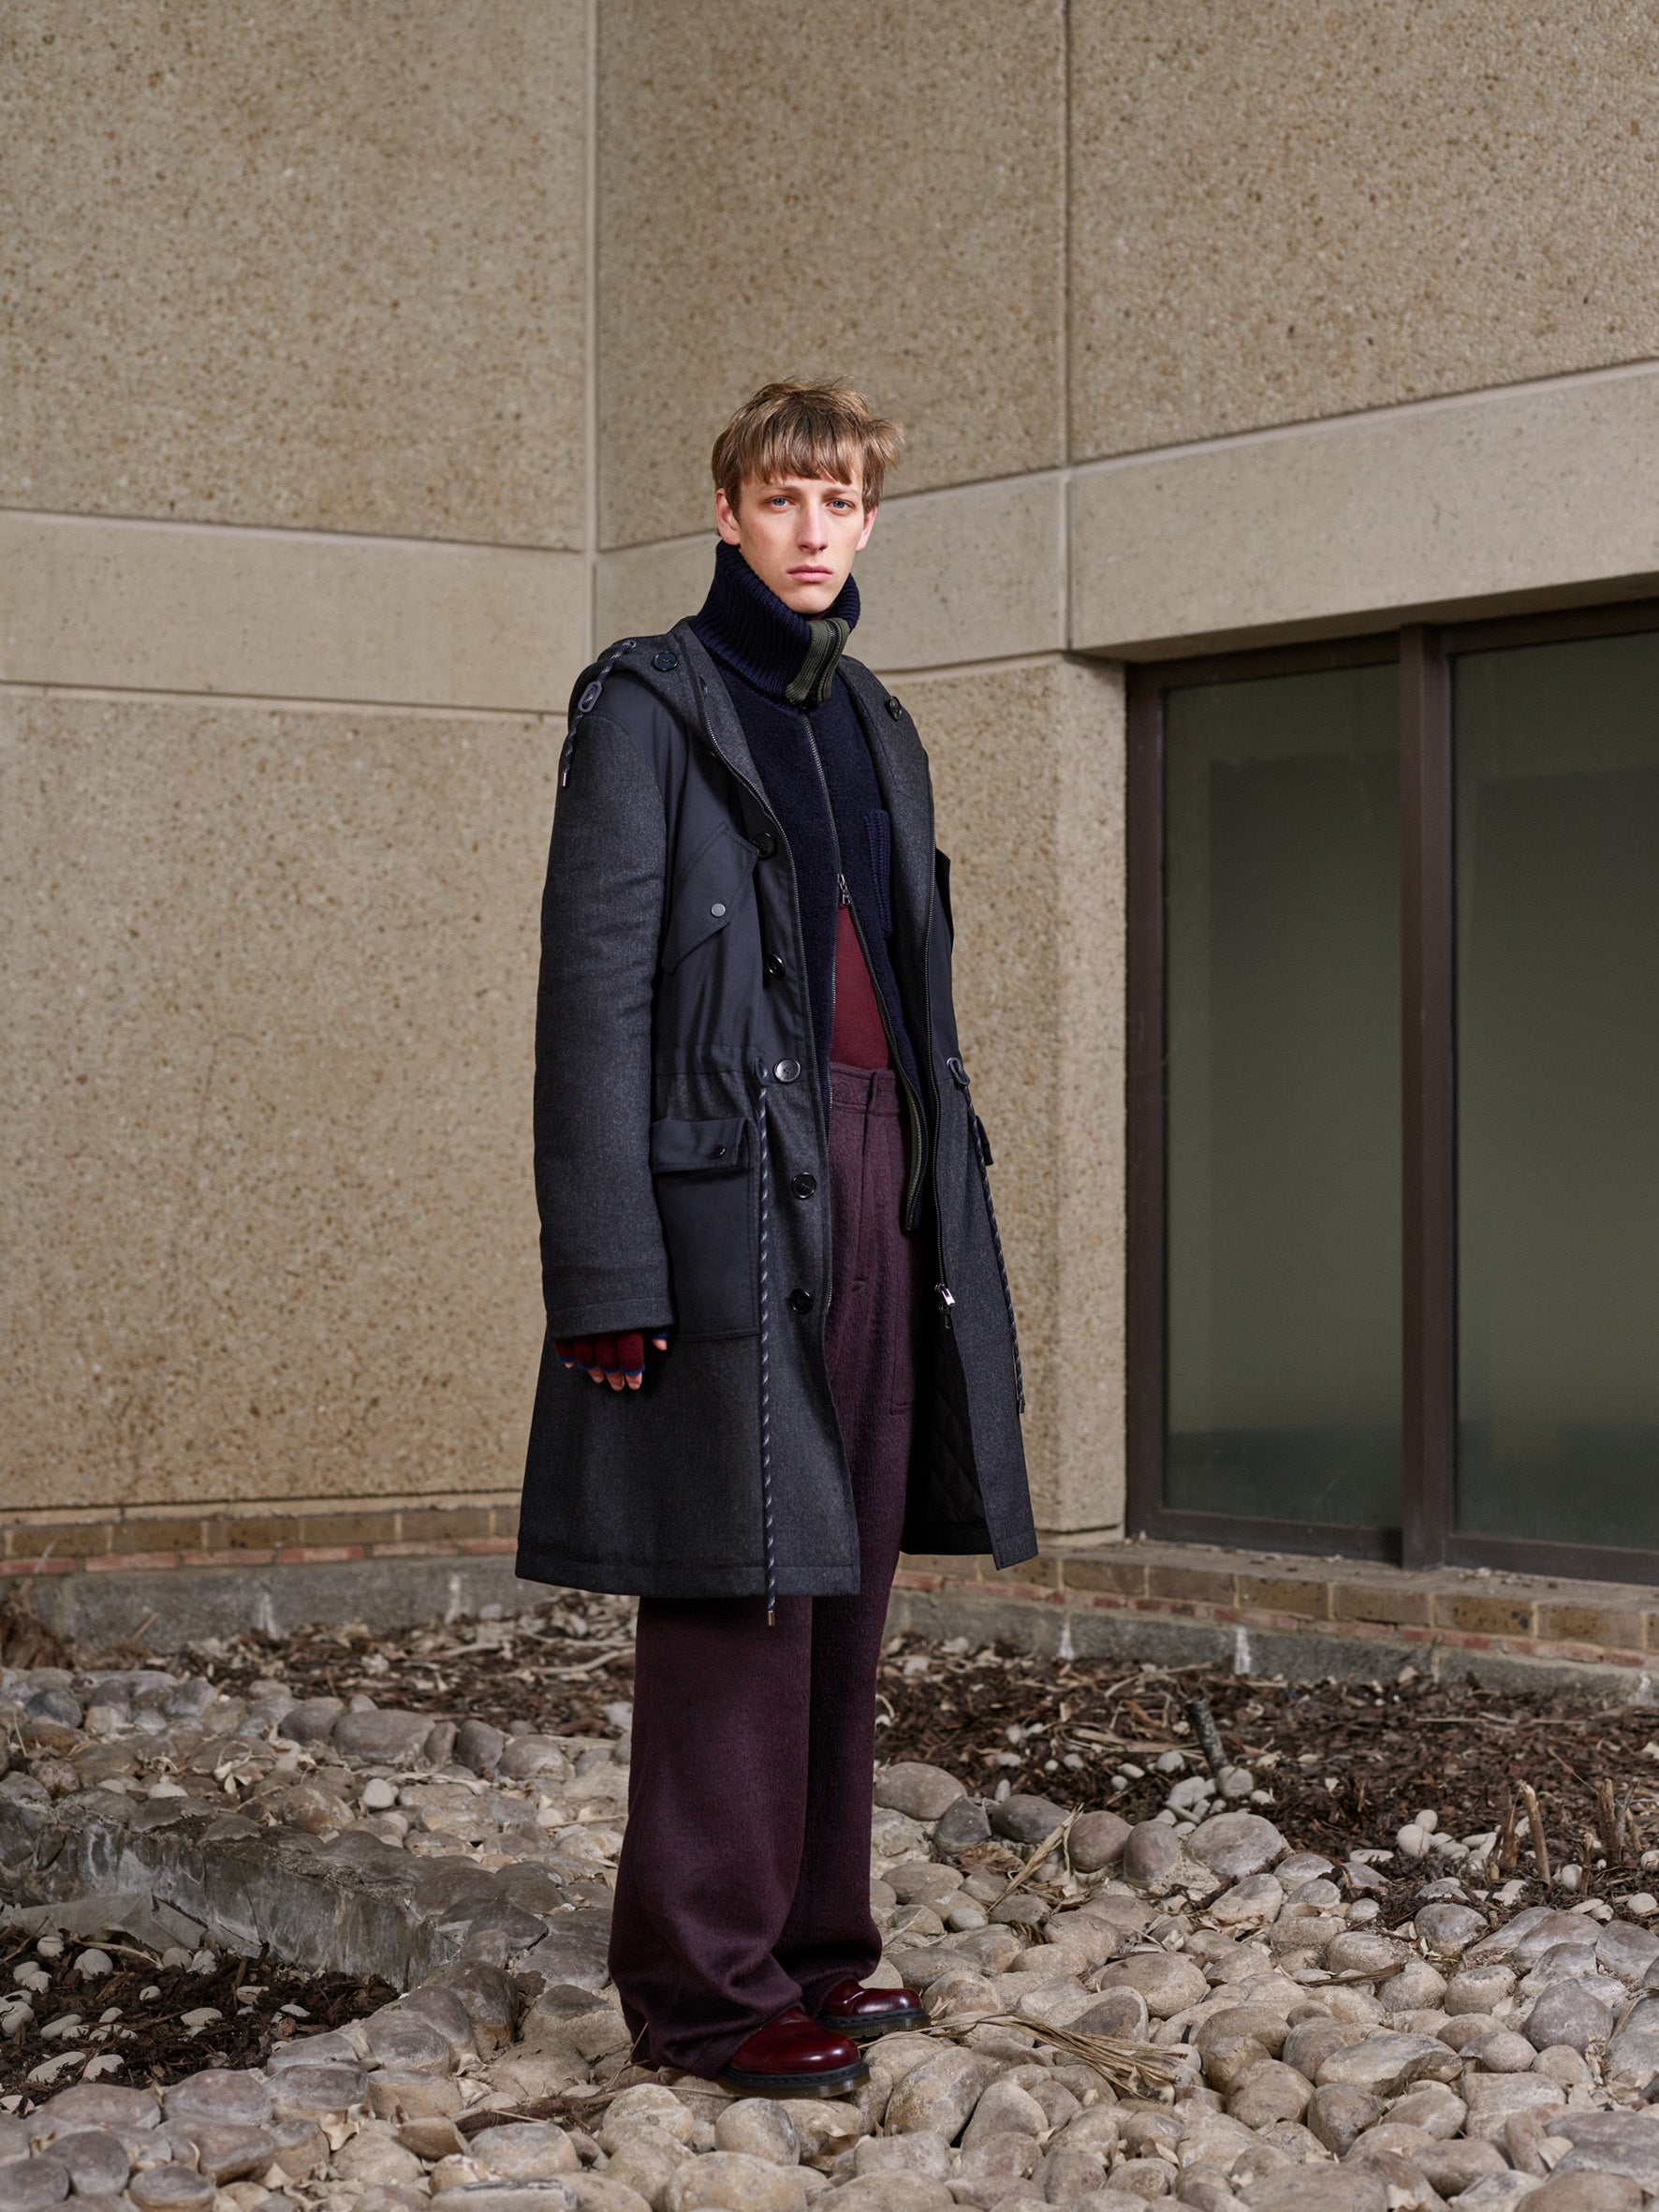 Pringle of Scotland Men's Autumn Winter '18 Look 12